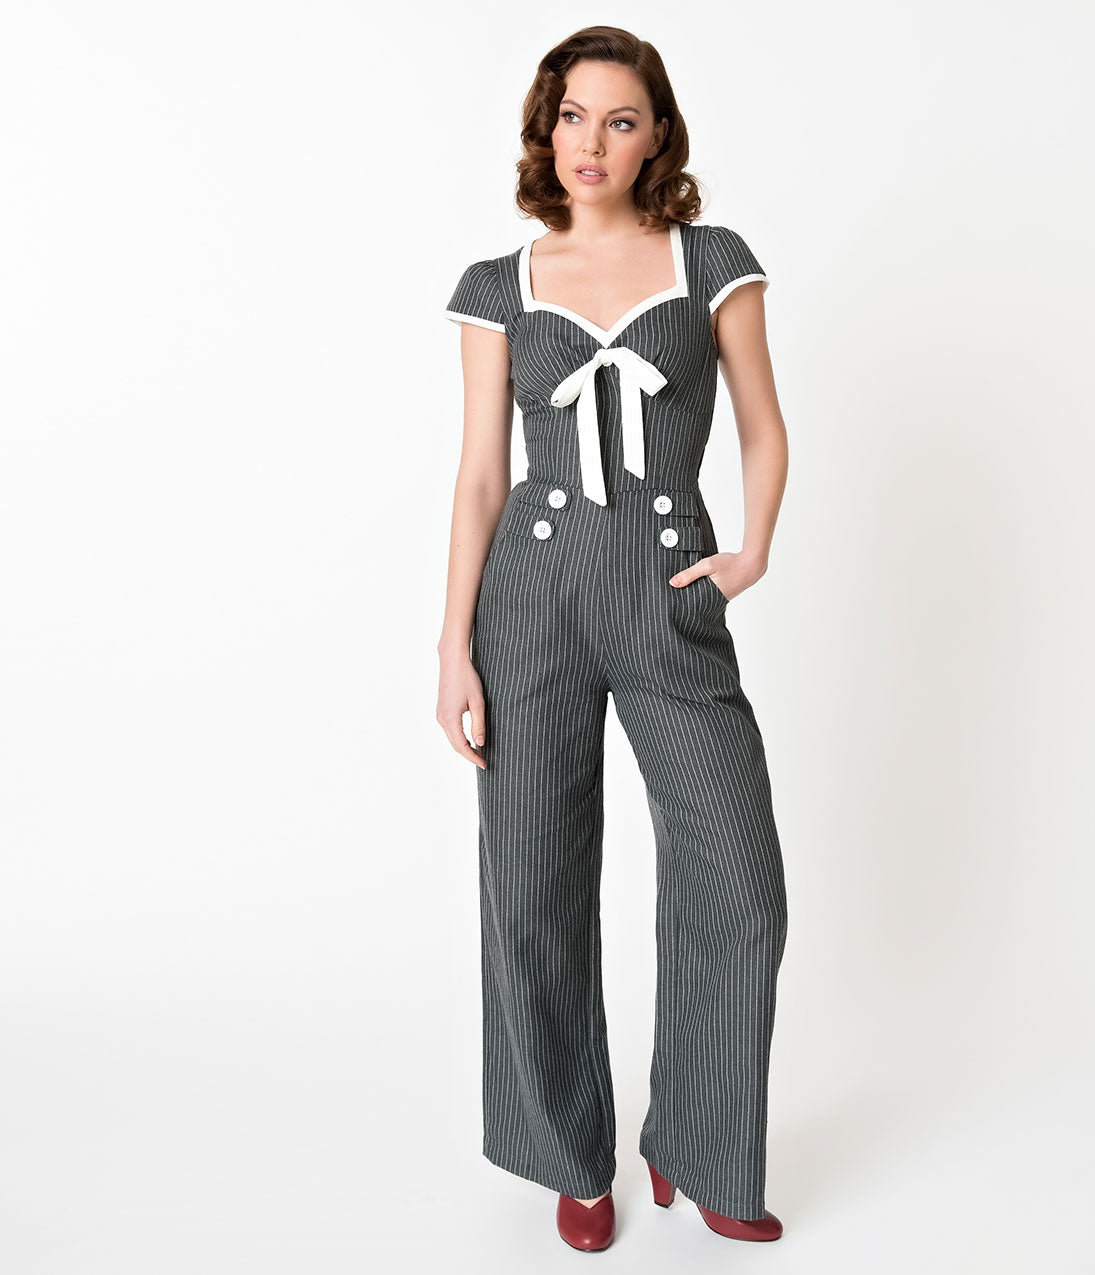 Vintage High Waisted Trousers, Sailor Pants, Jeans Voodoo Vixen Grey  White Pinstriped Leanne Jumpsuit $84.00 AT vintagedancer.com